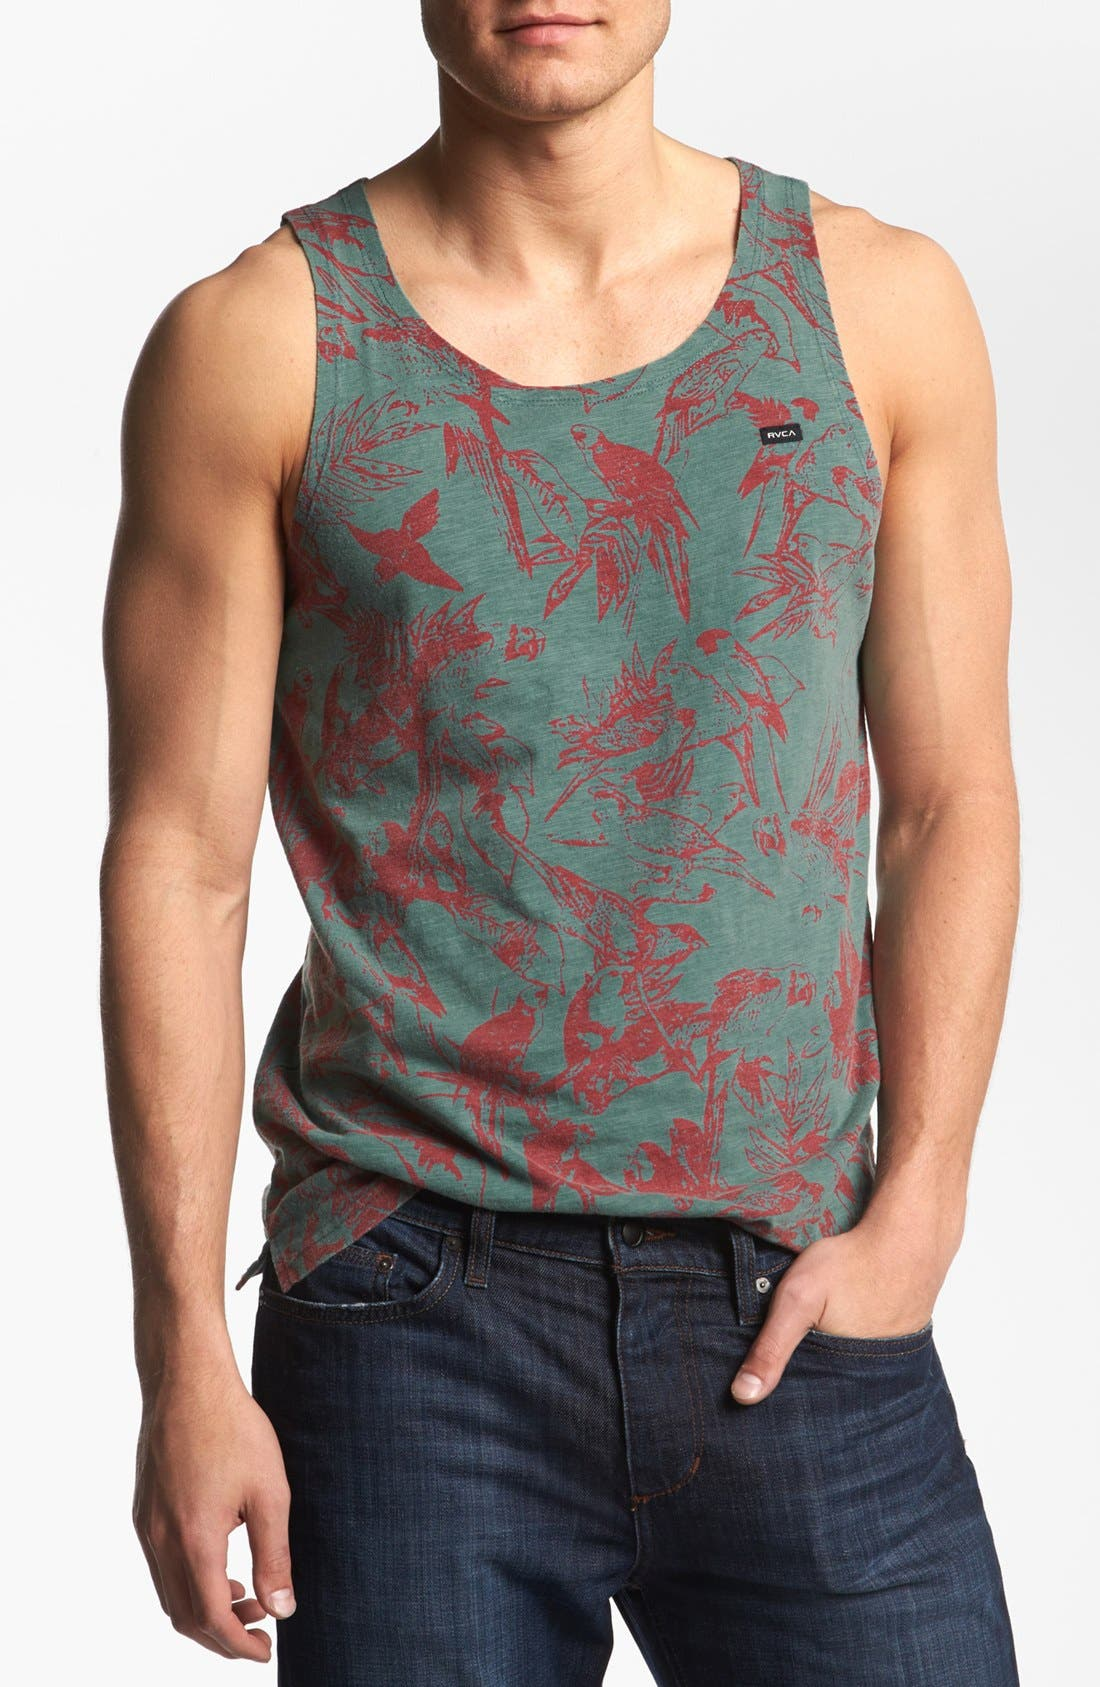 Alternate Image 1 Selected - RVCA 'Squawker' Tank Top